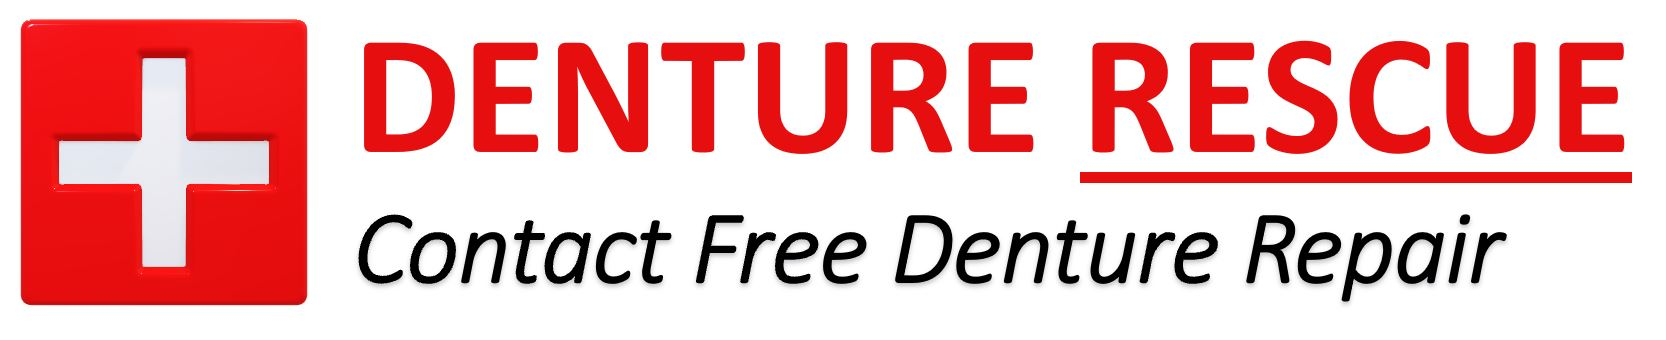 Contact Free Denture Repairs - Request a free quote today!